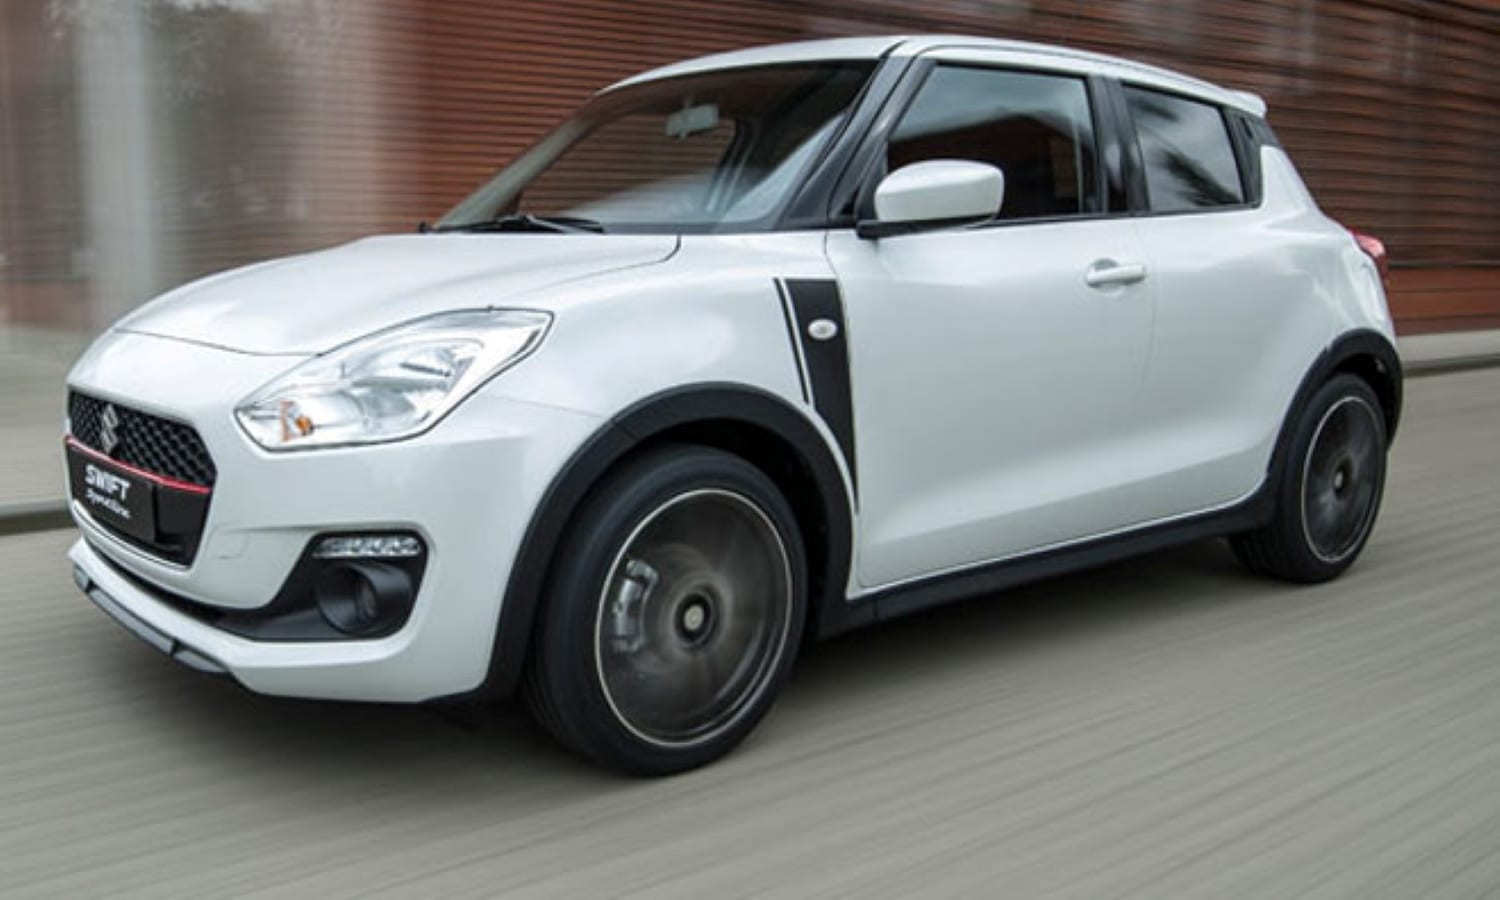 Suzuki Swift Smart Hybrid